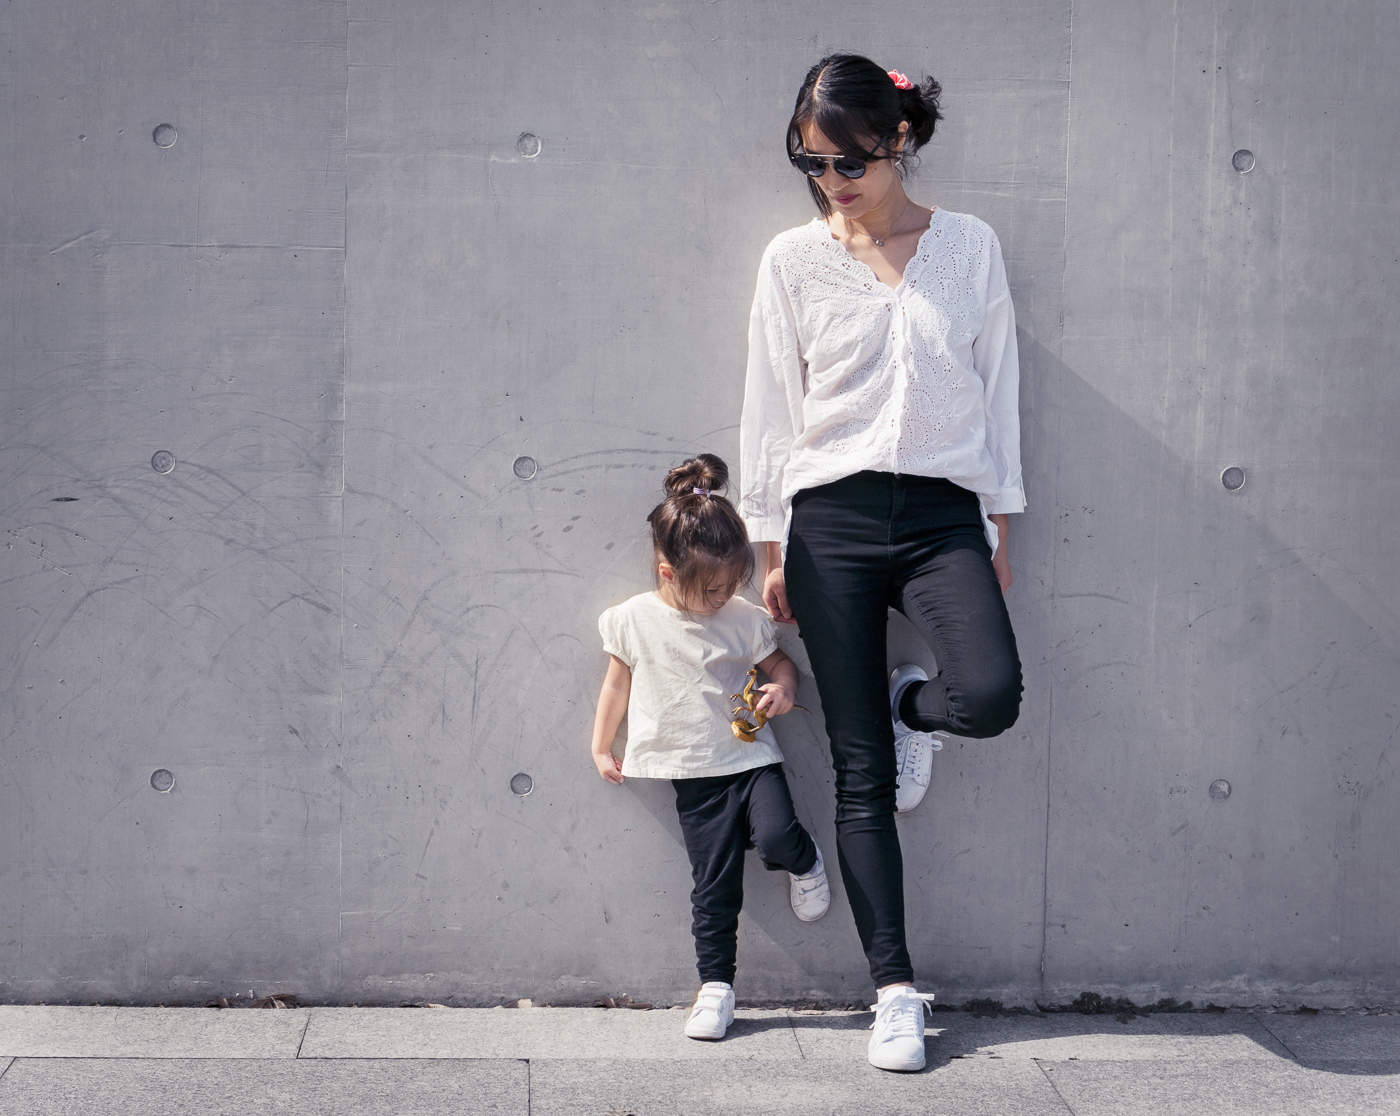 The bright sunlight and the concrete wall made me think of fashion so I asked my wife to pose and of course our daughter copied her.